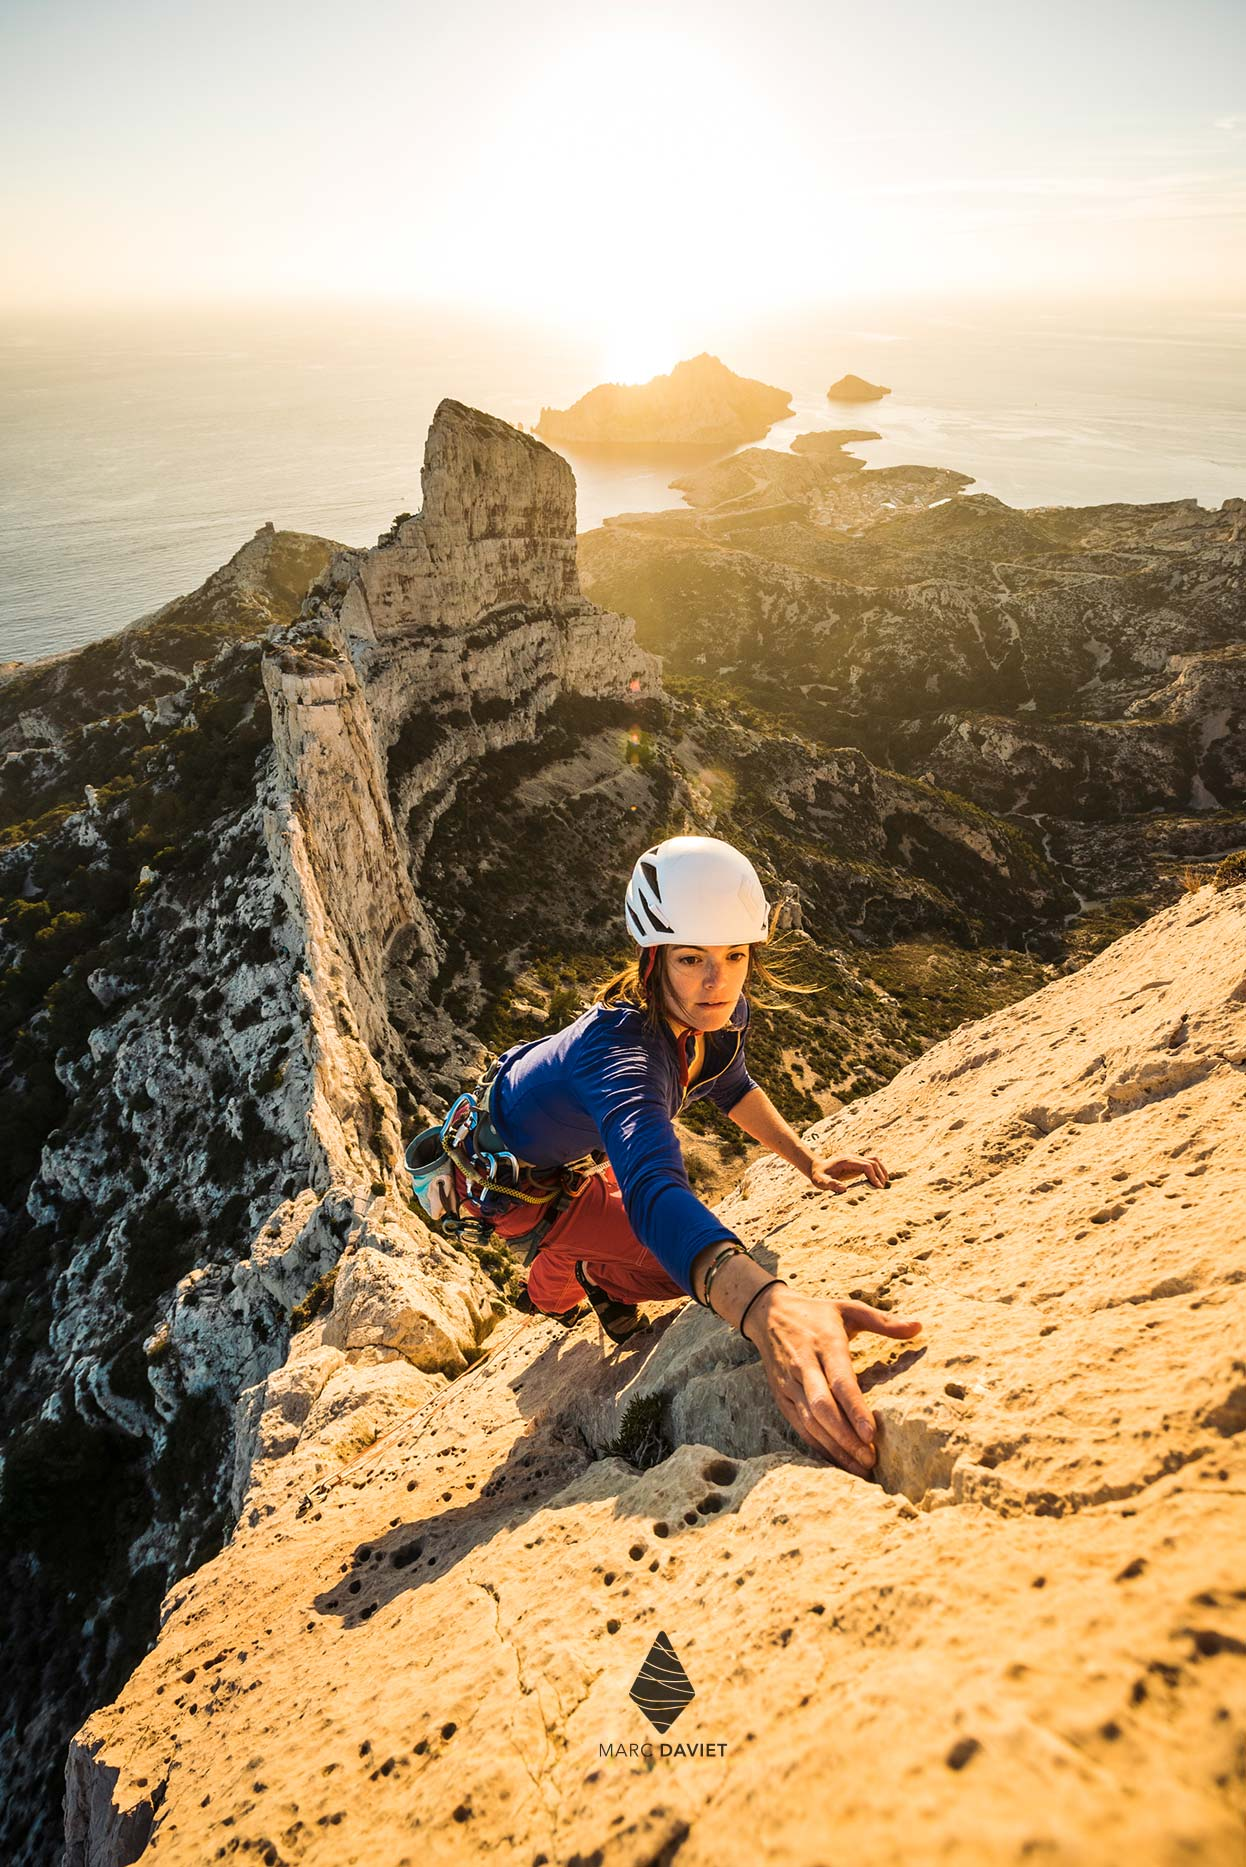 Climbing in Calanques